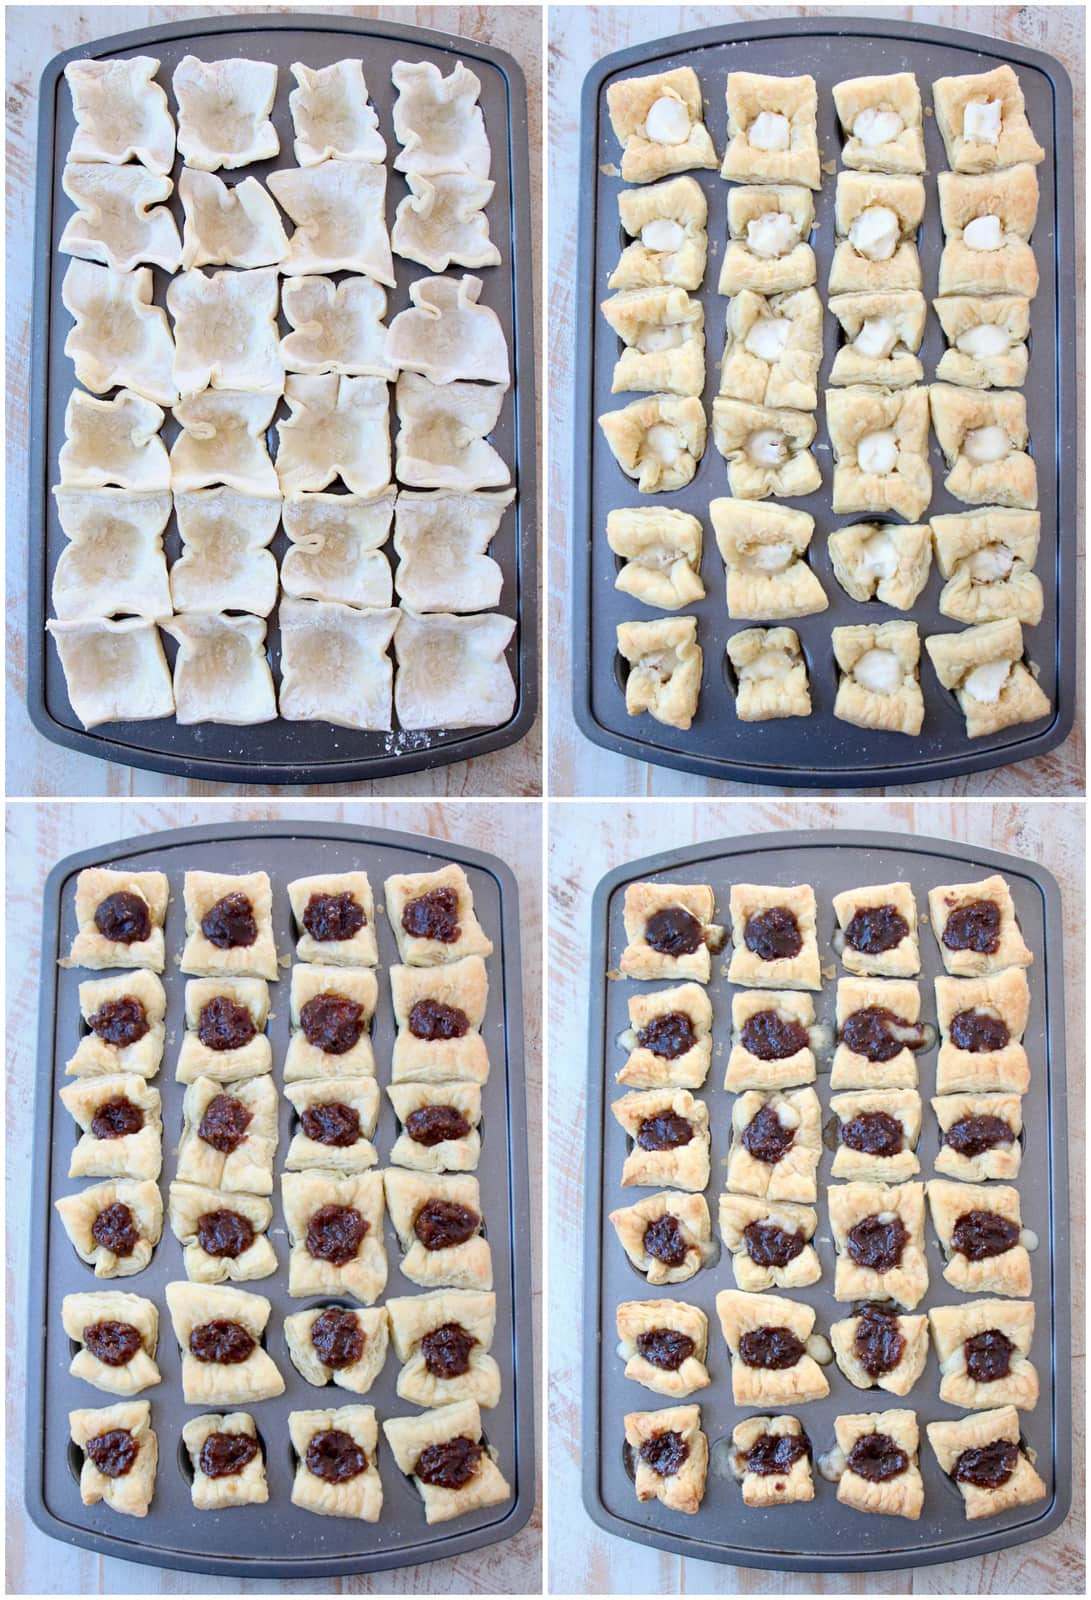 Instructional images for how to make baked brie puff pastry bites